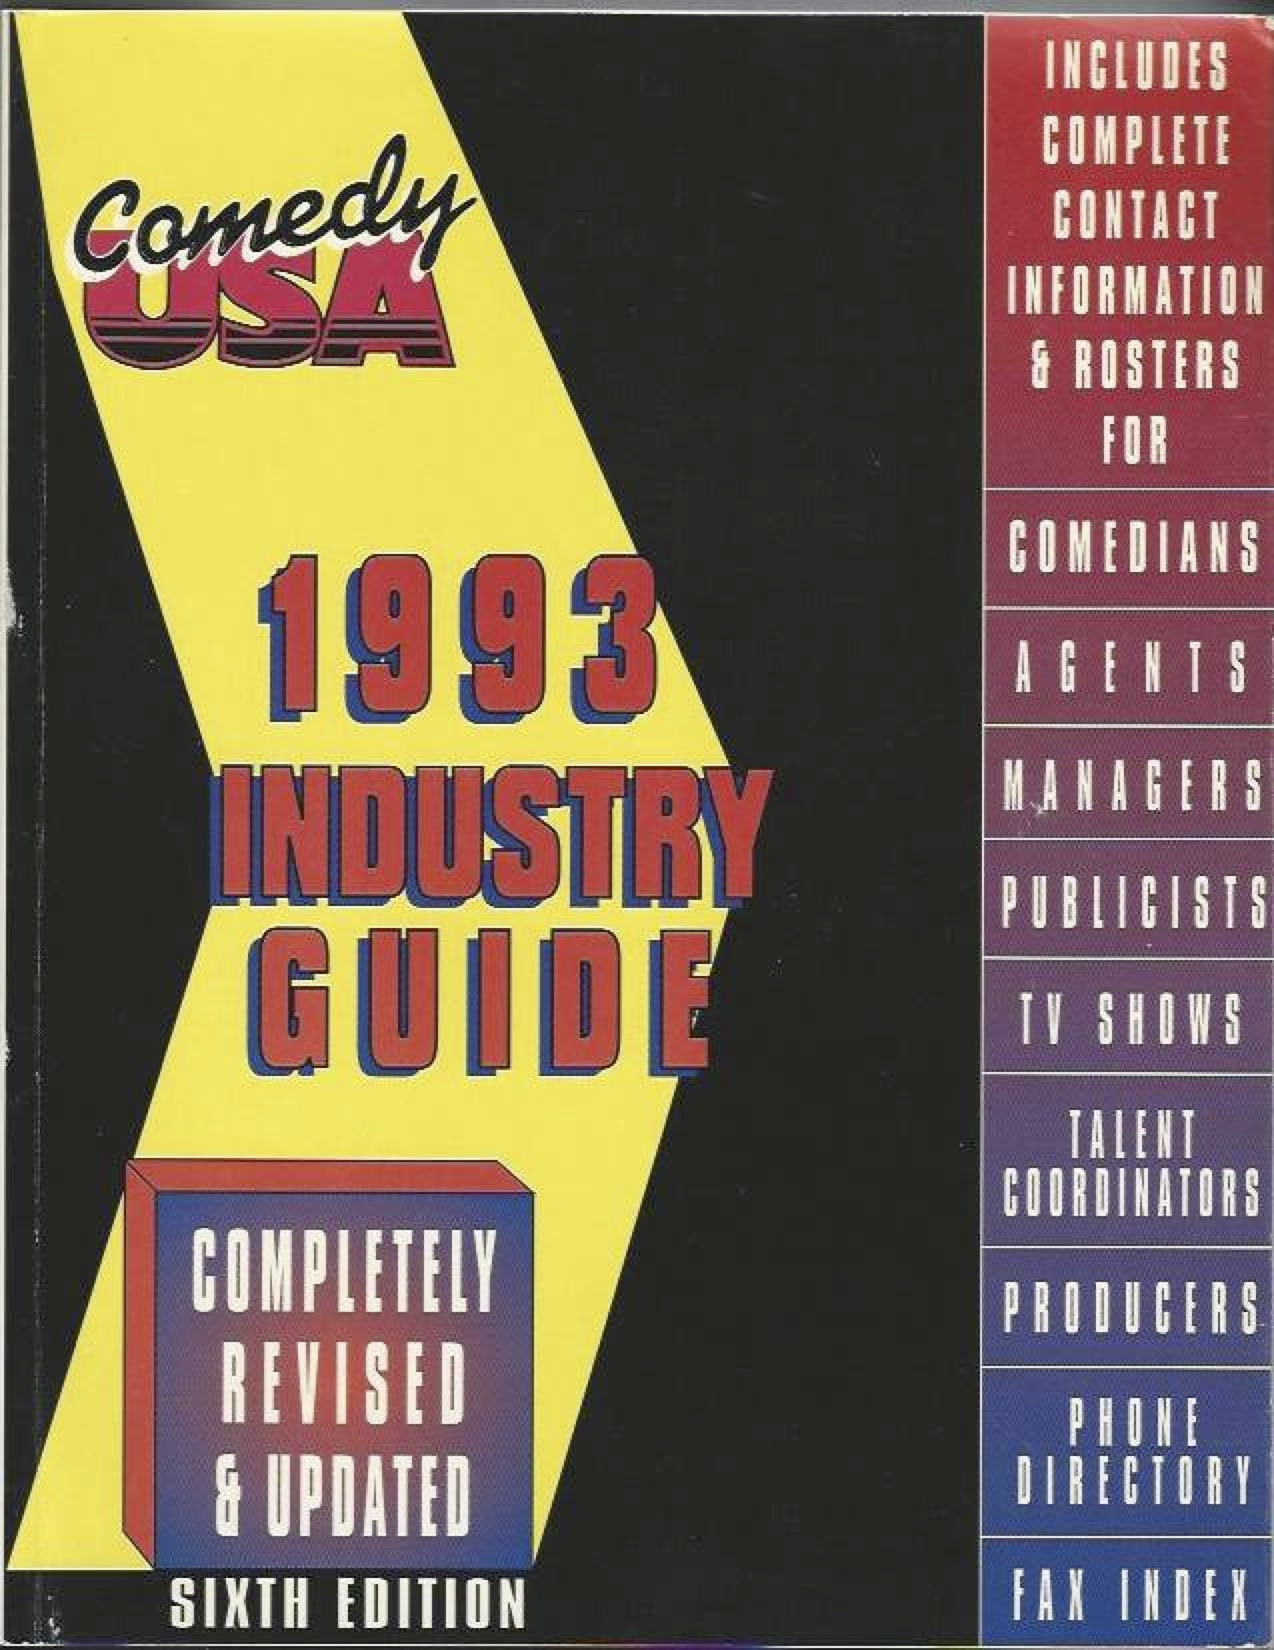 93 Industry Guide Cover